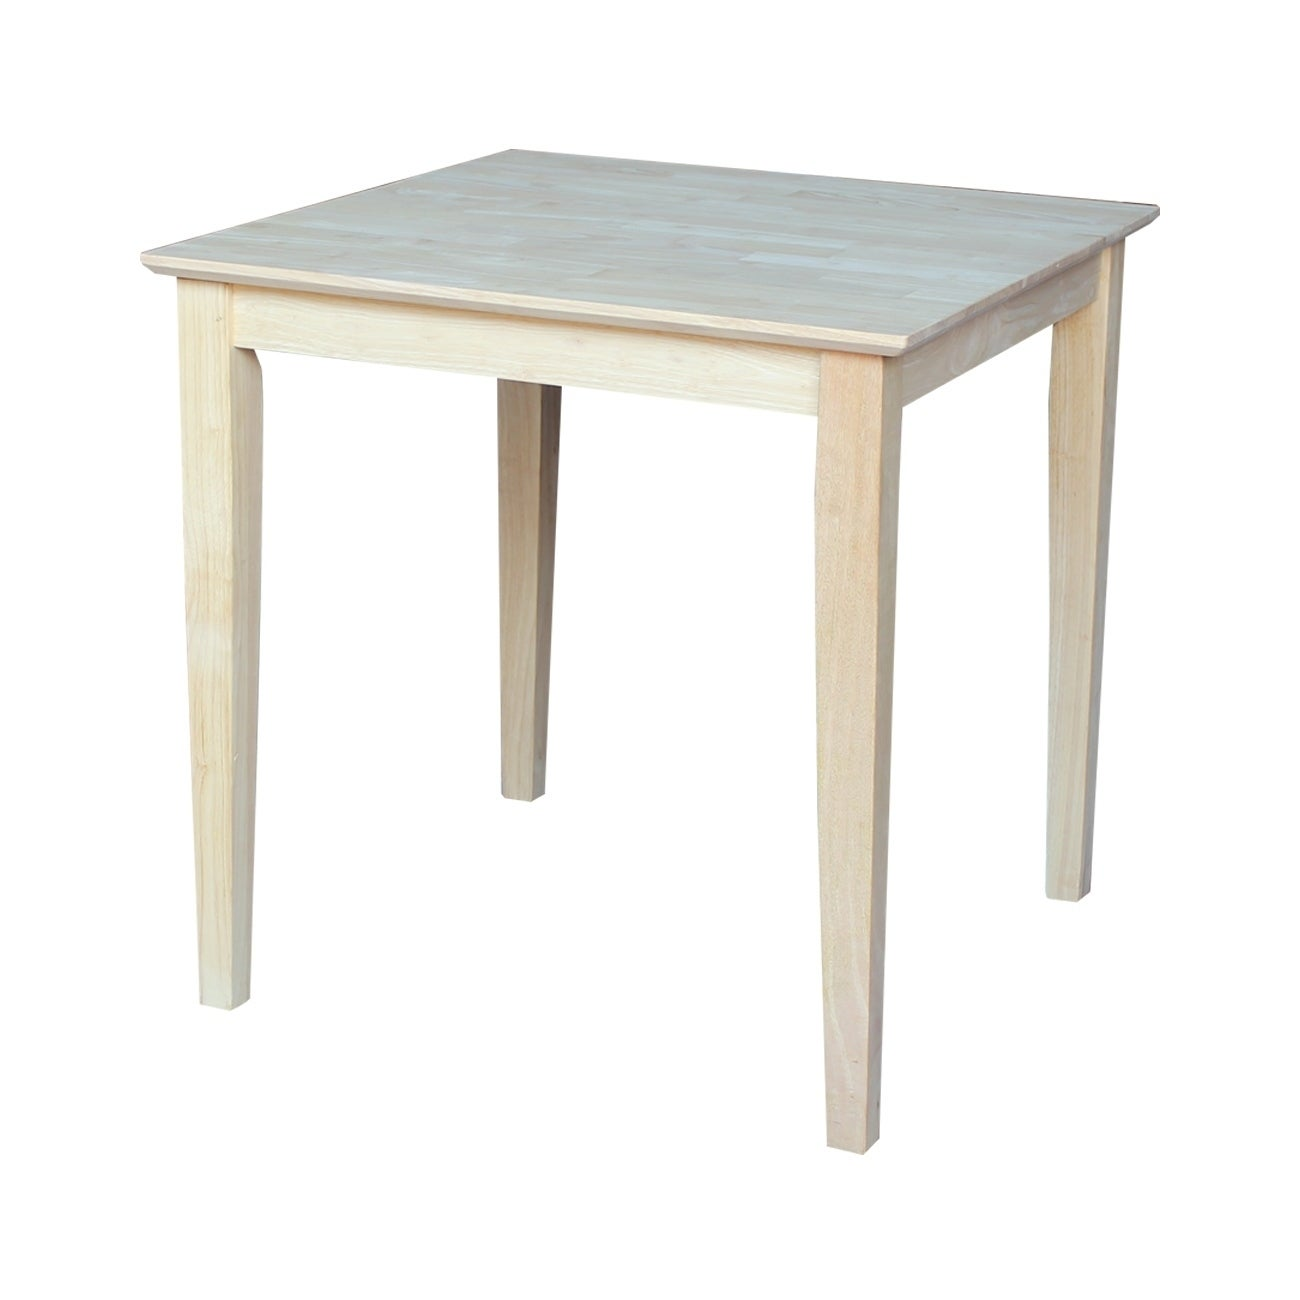 Unfinished Dining Room Table: Maison Rouge Denham 30-inch Unfinished Shaker Style Parawood Square Dining Table